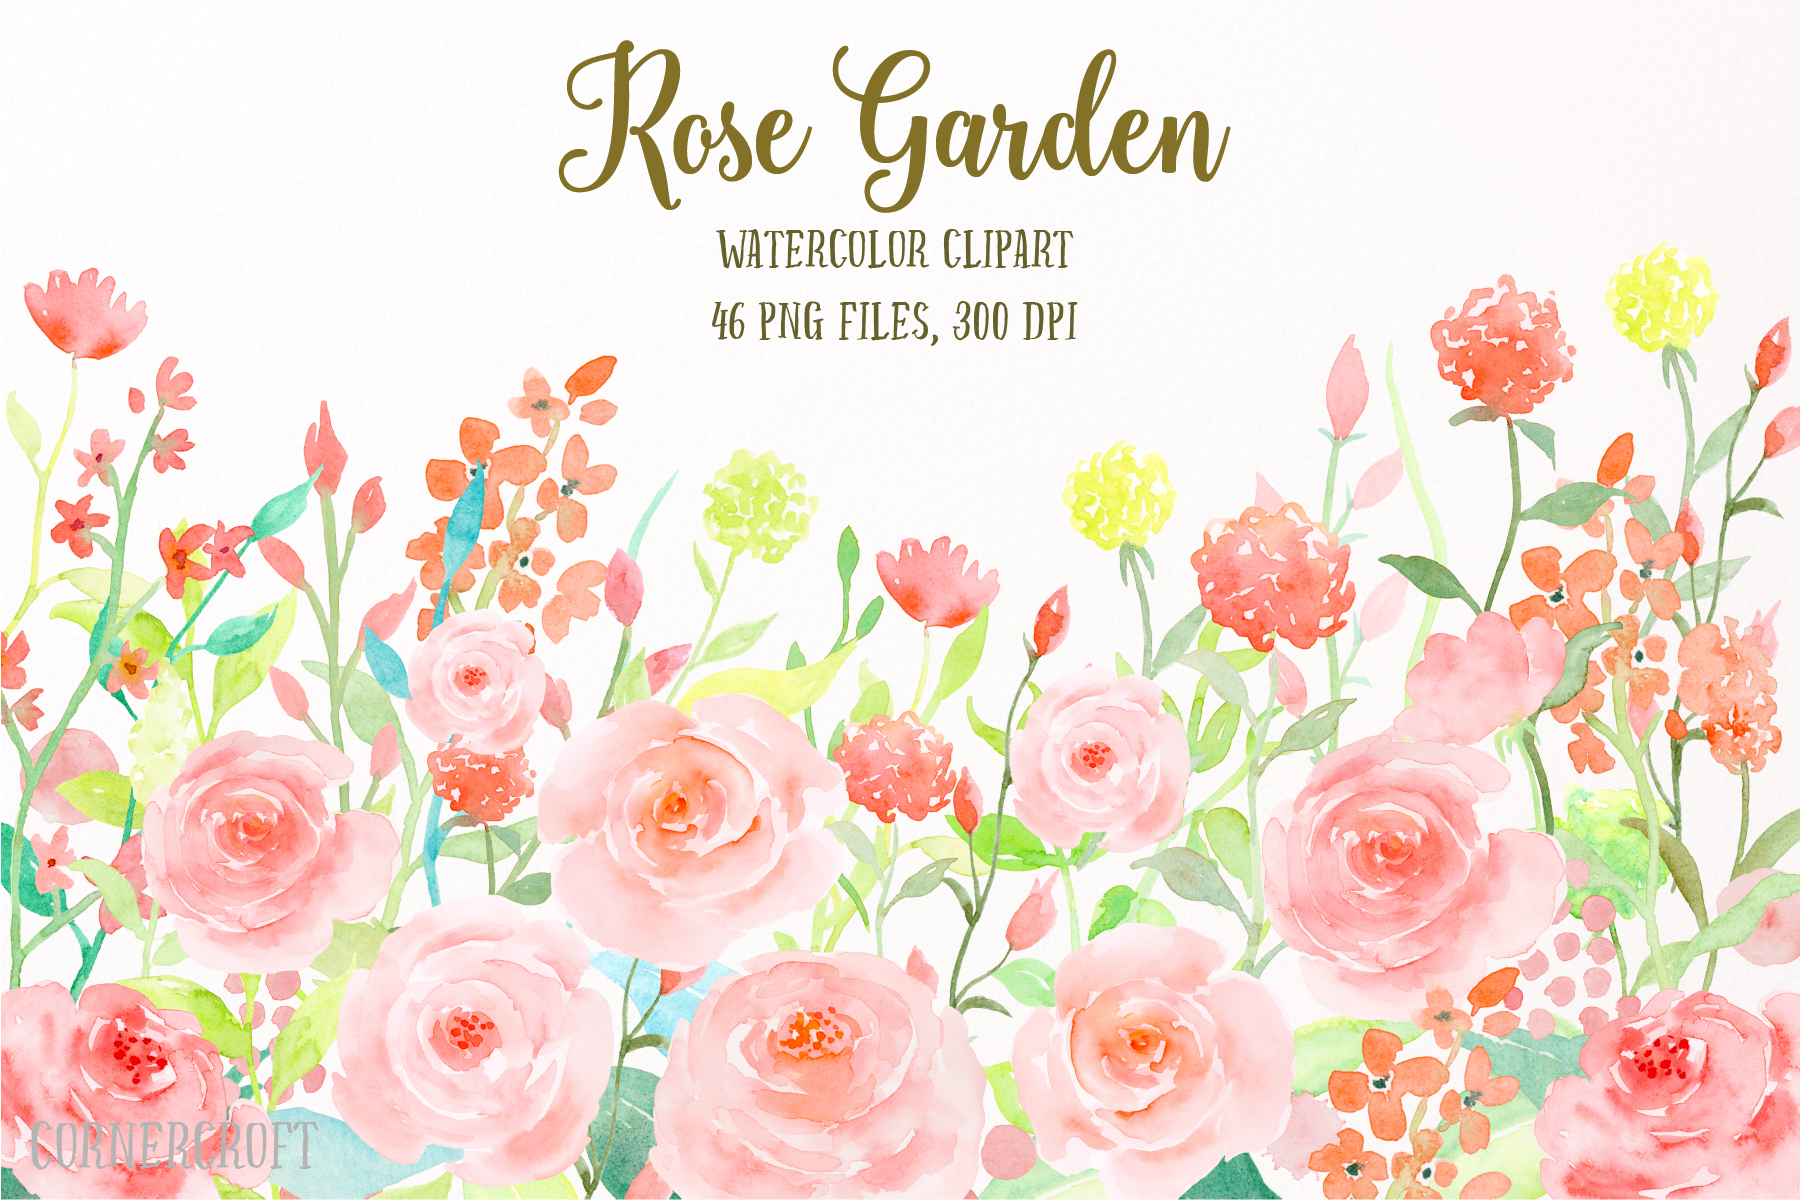 Watercolor Flower Collection Rose Garden, Watercolor Clipart.